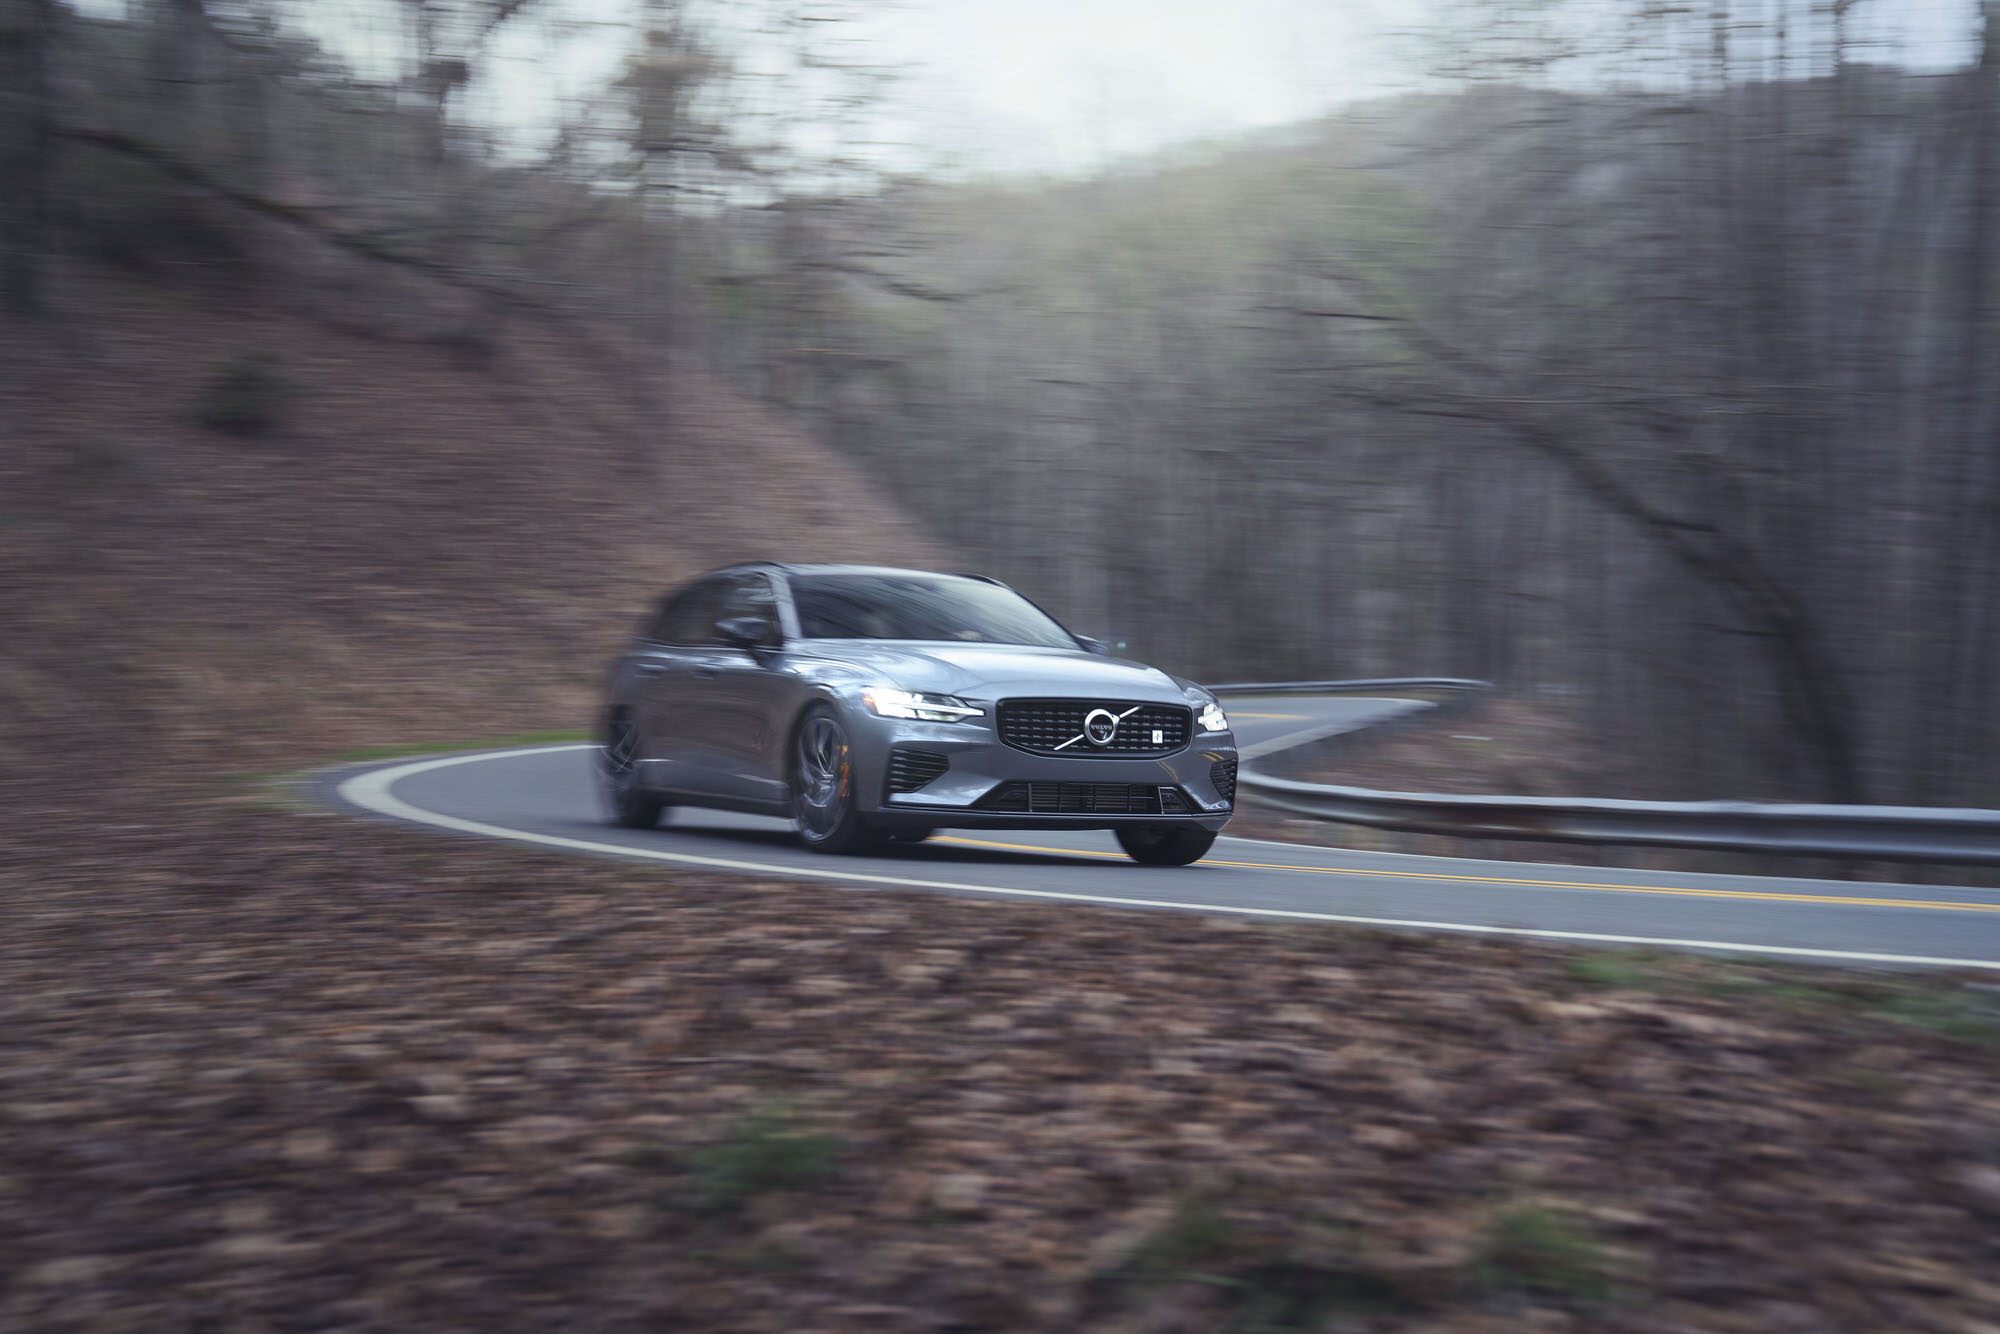 Volvo V60 T8 Polestar driving on twisty mountain roads